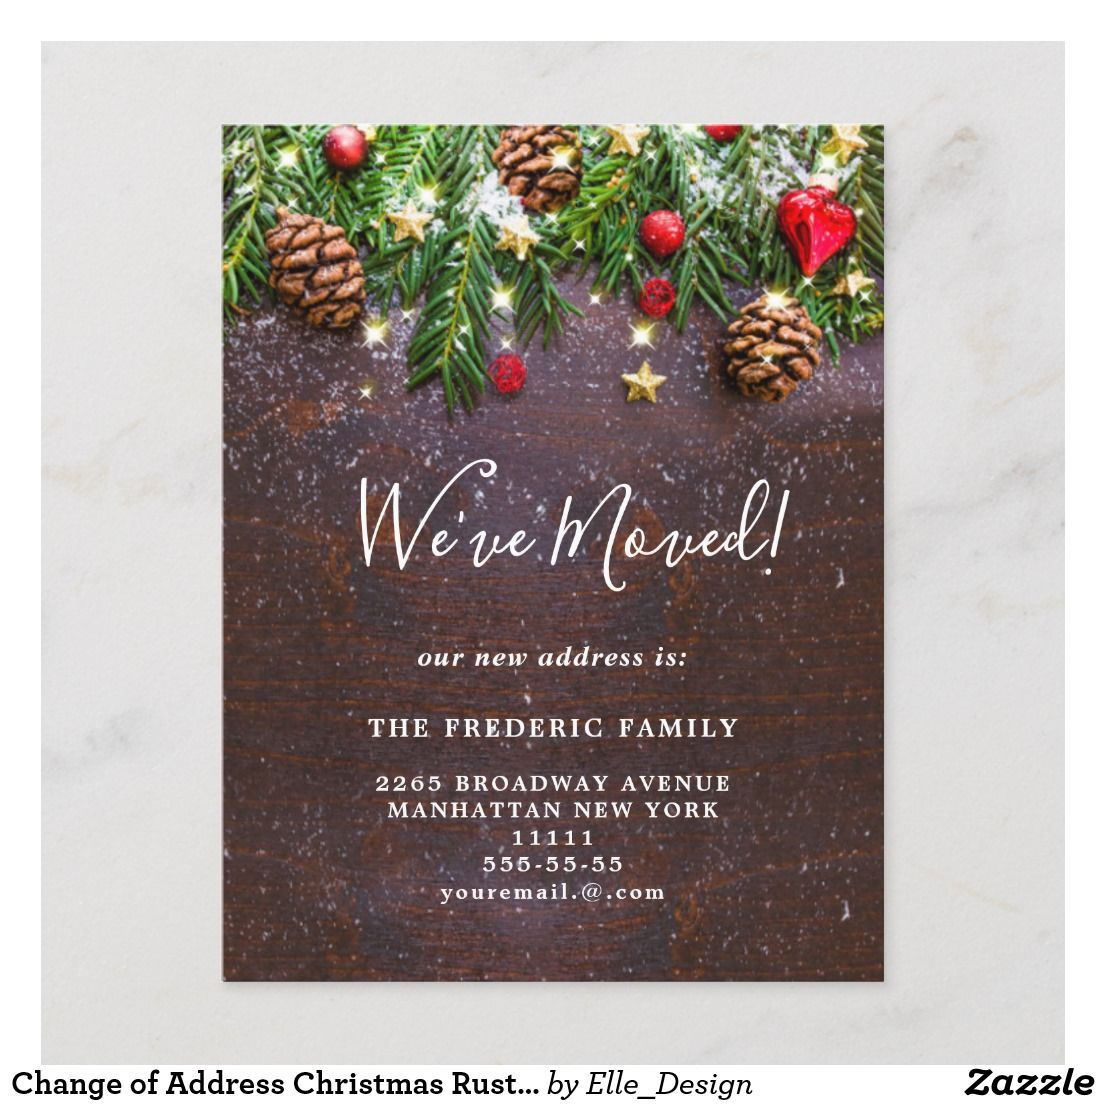 Change of Address Christmas Rustic Holidays Announcement ...